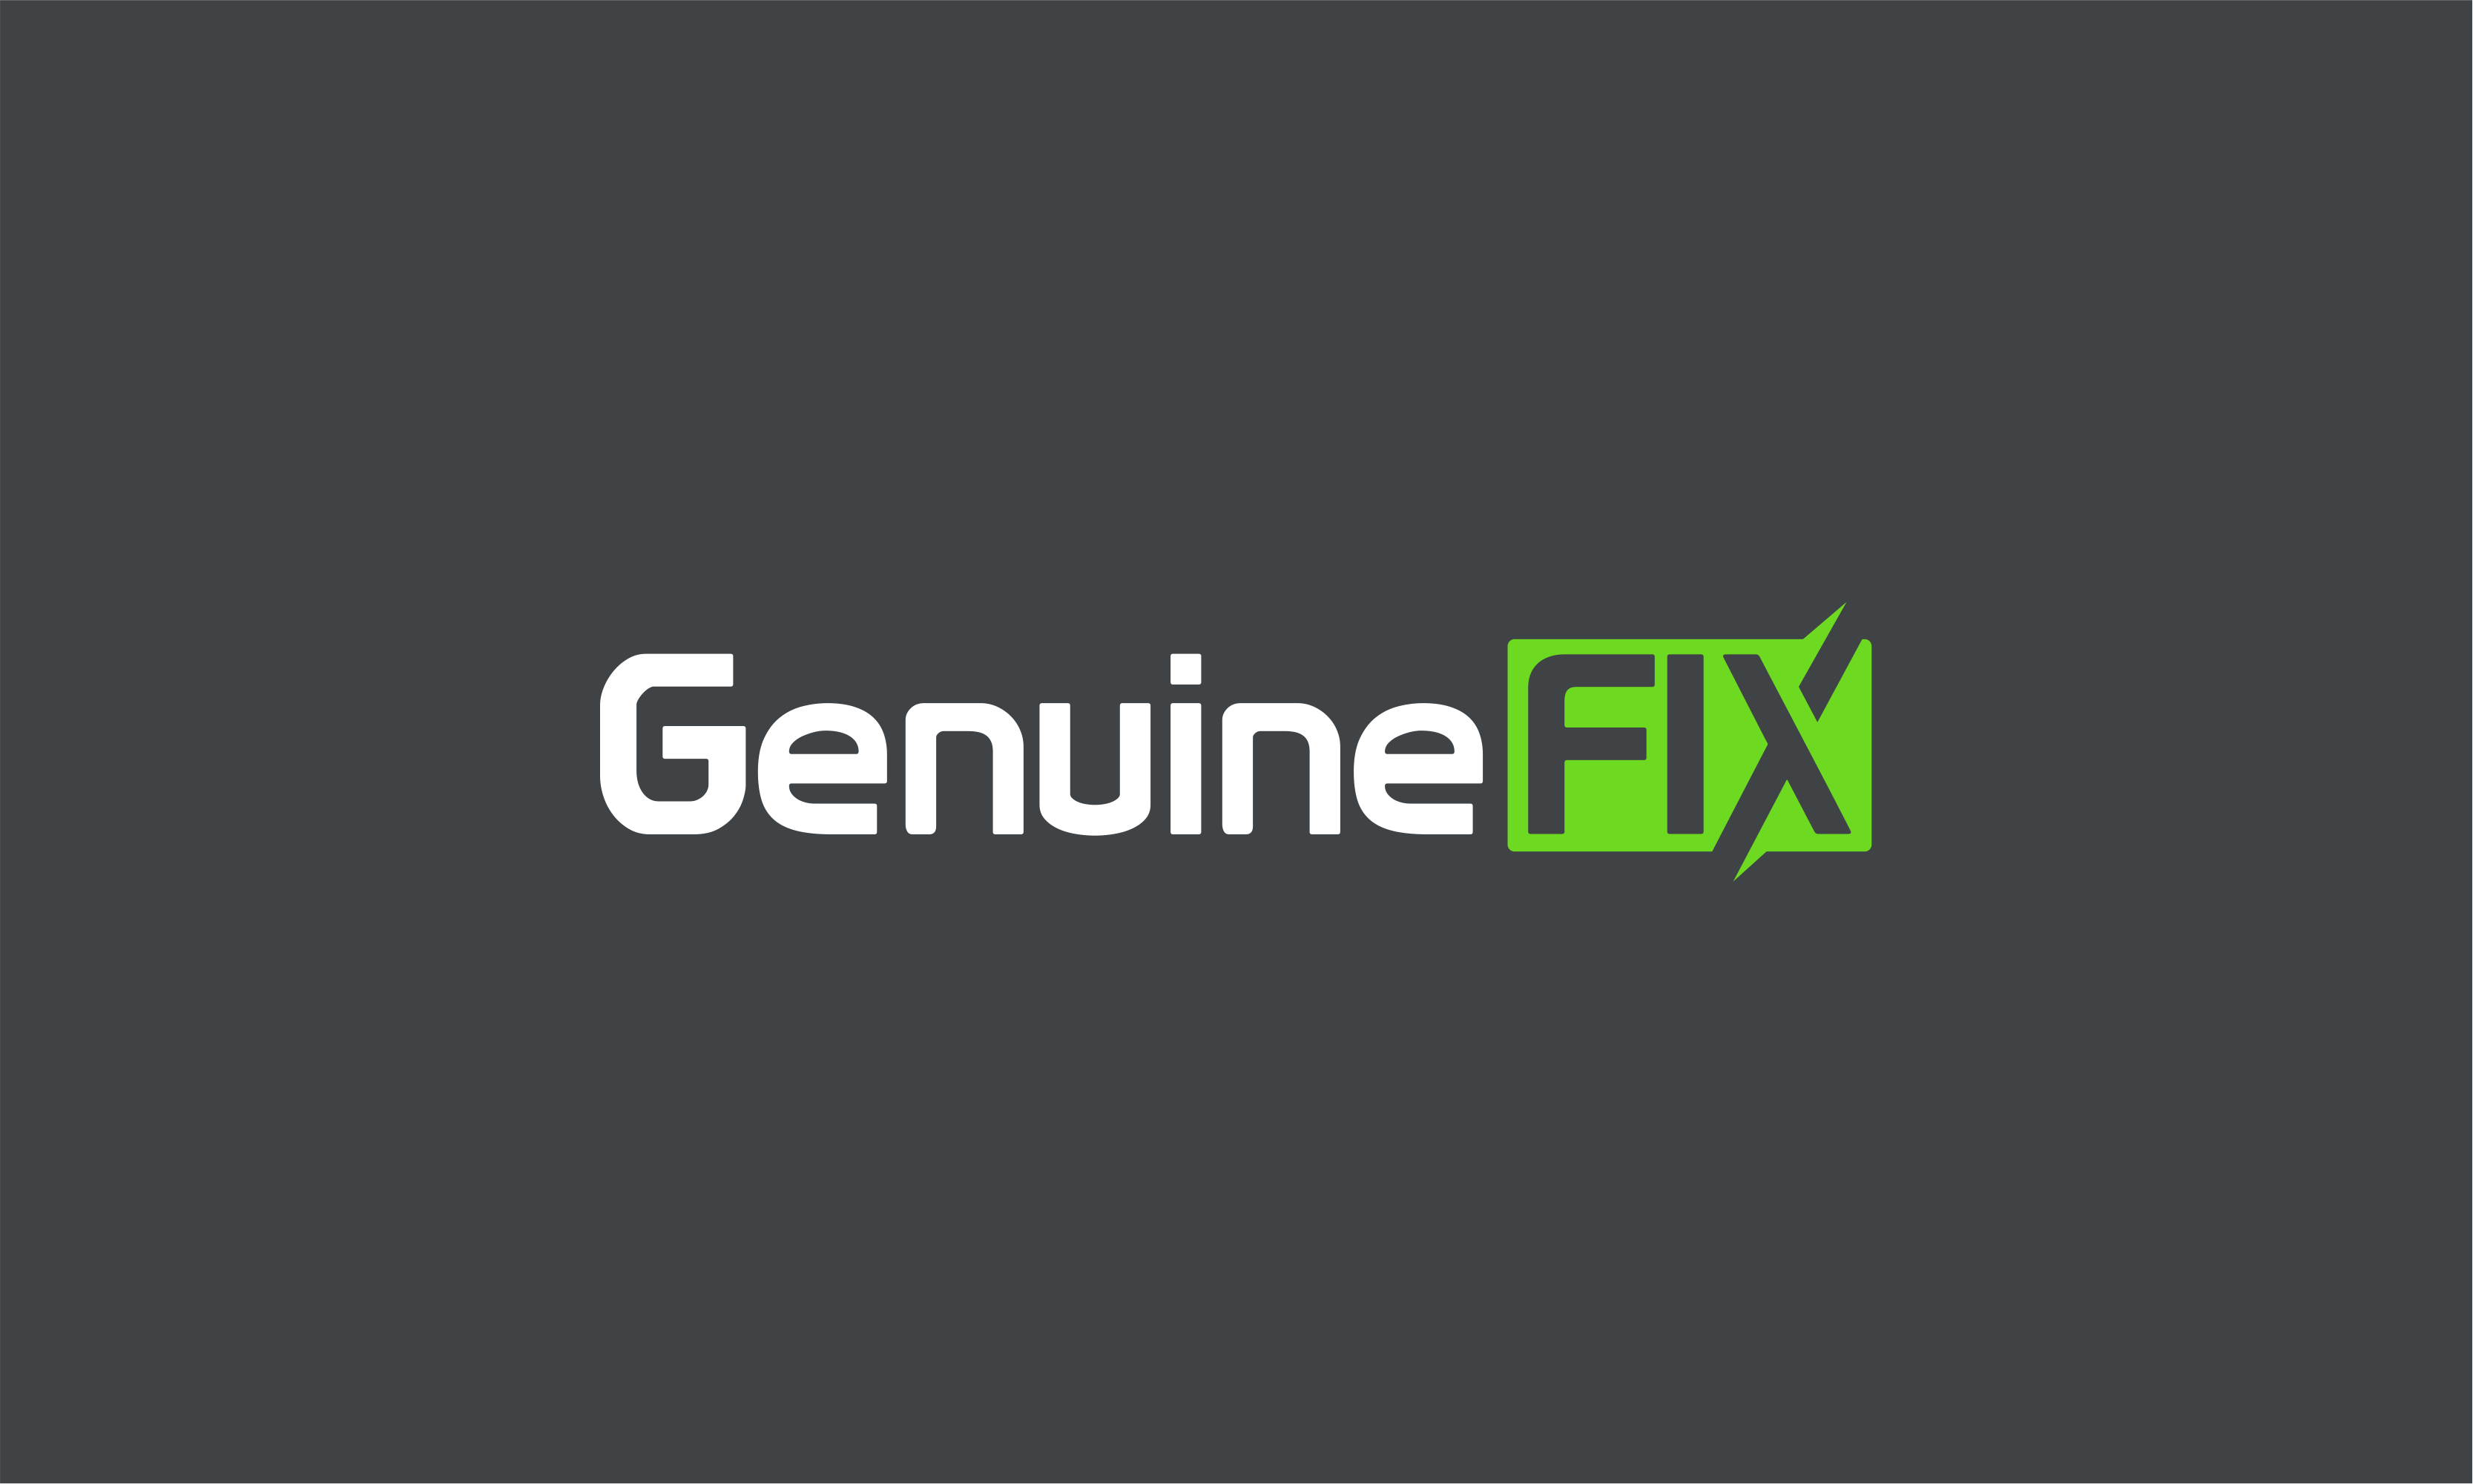 Genuinefix